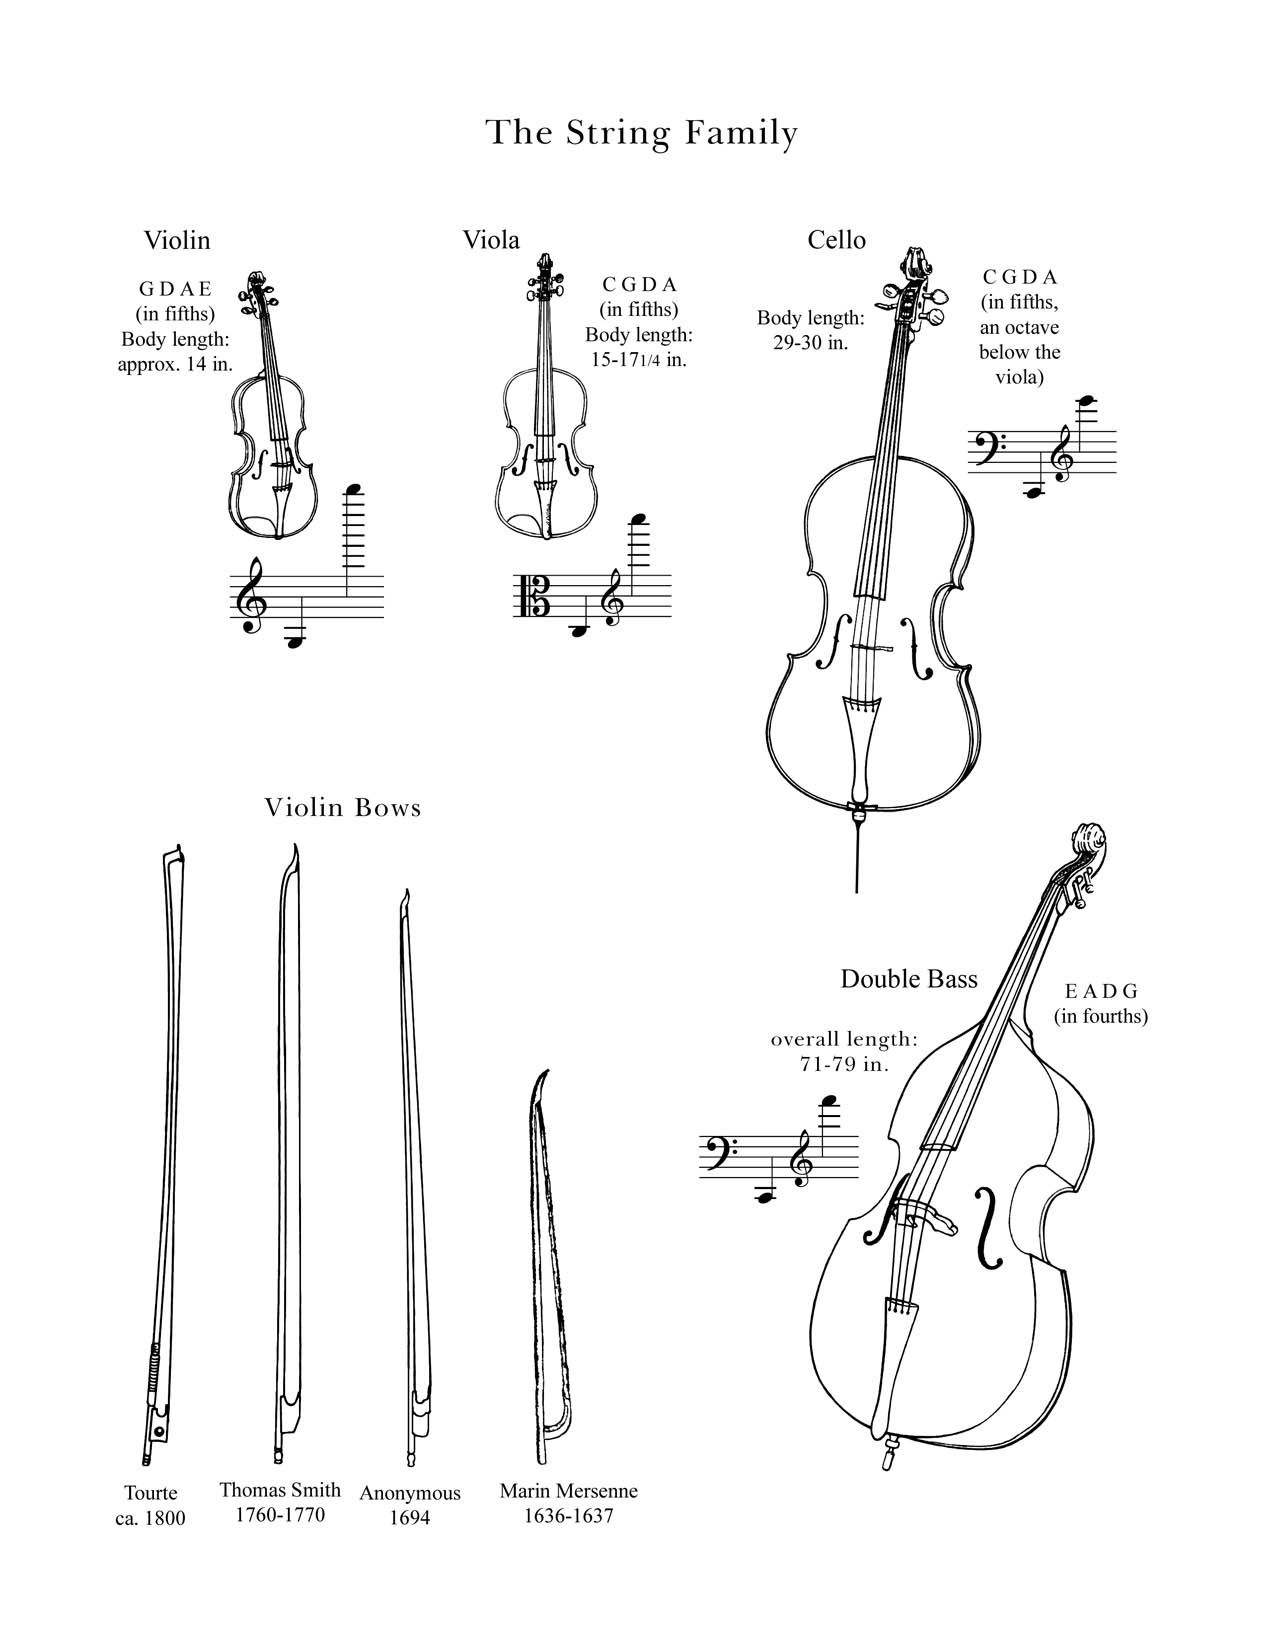 u0026quot the string family u0026quot    drawings of instruments in the